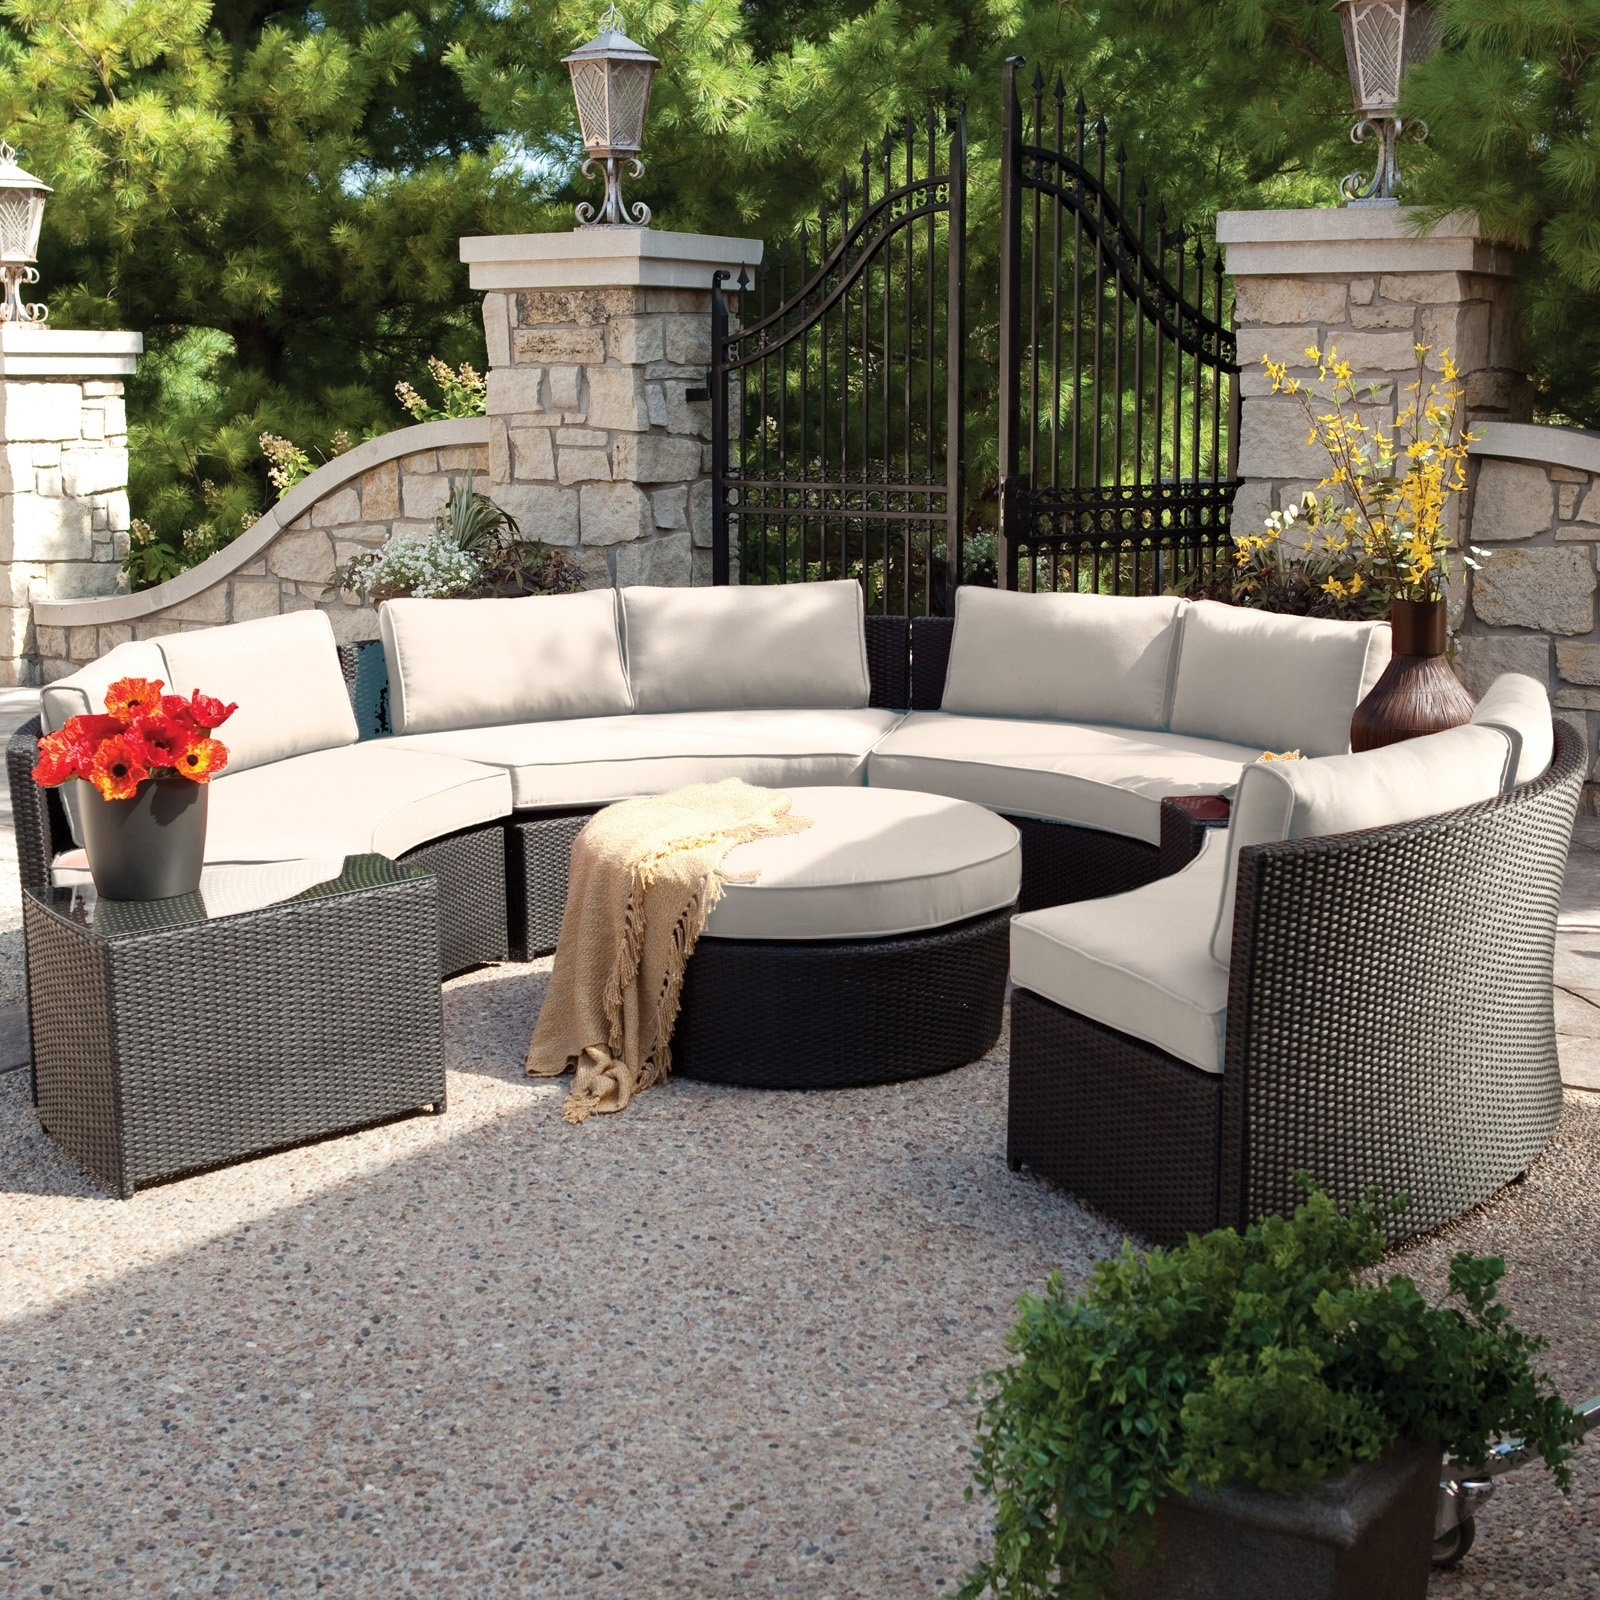 Belham Living Meridian Round Outdoor Wicker Patio Furniture Set With In Patio Sofas (Image 1 of 10)